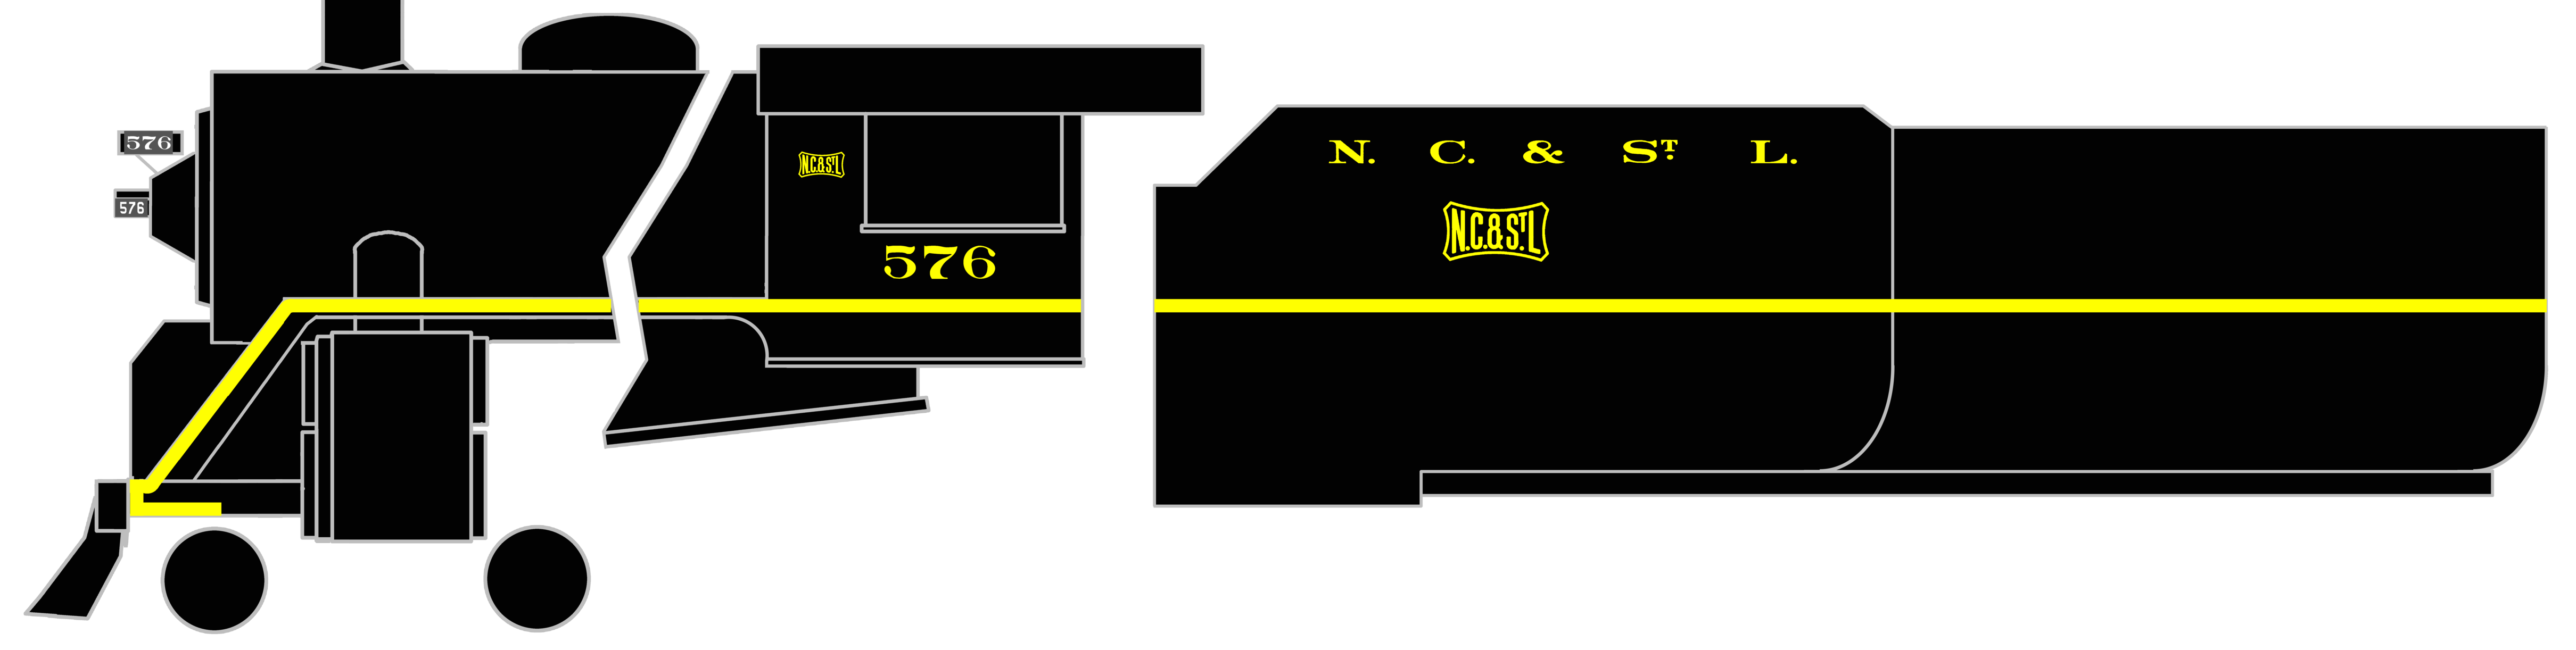 K4-S-Decals-Nashville-Chattanooga-and-St-Louis-Steam-Locomotive-Yellow-NC-amp-StL thumbnail 3